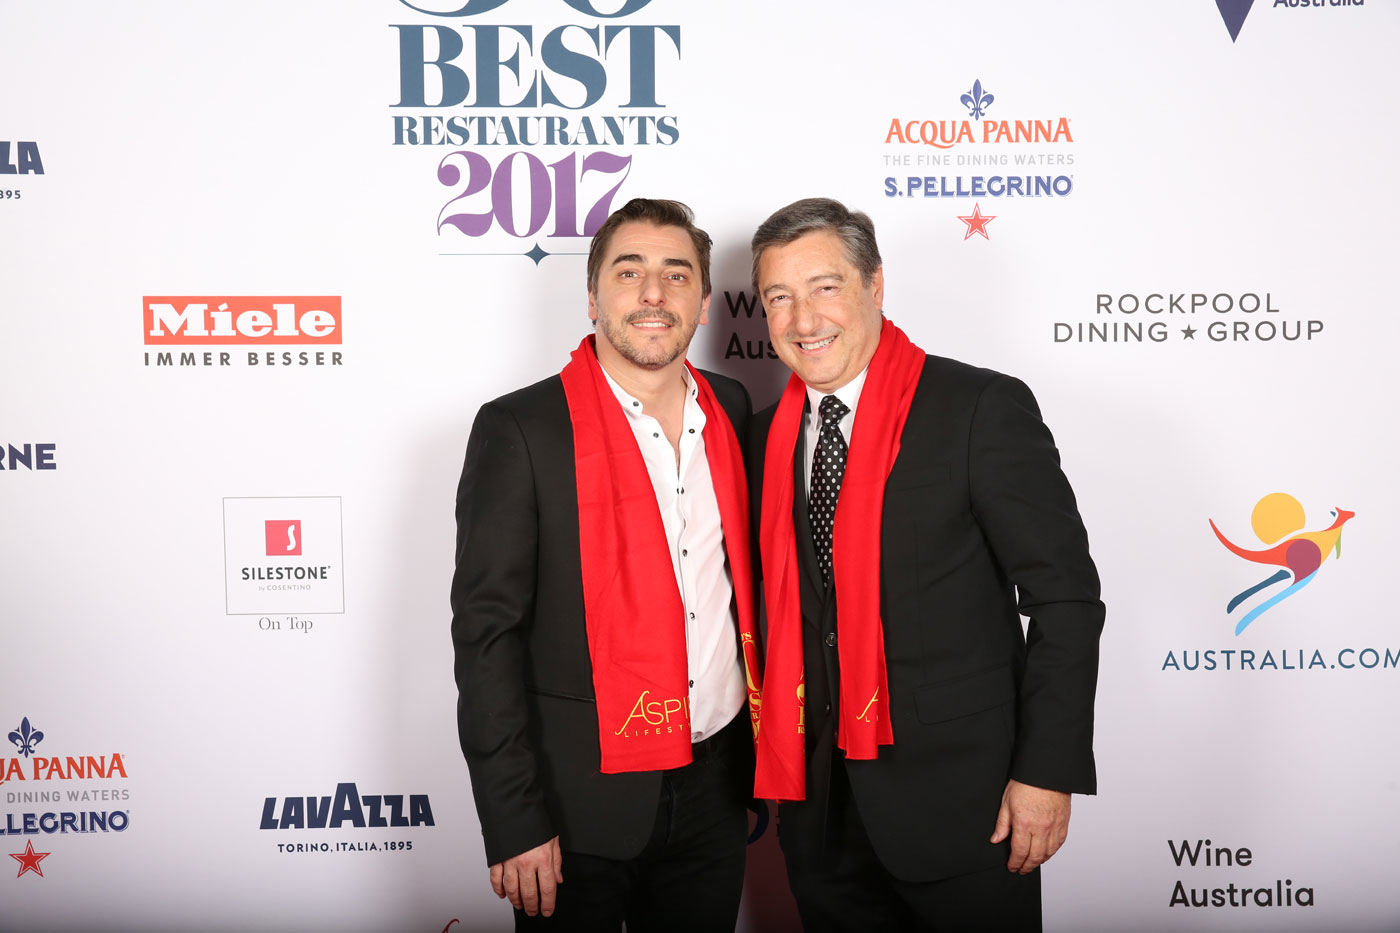 Bilbao hosts the World's 50 Best Restaurants Awards, Paladar y Tomar